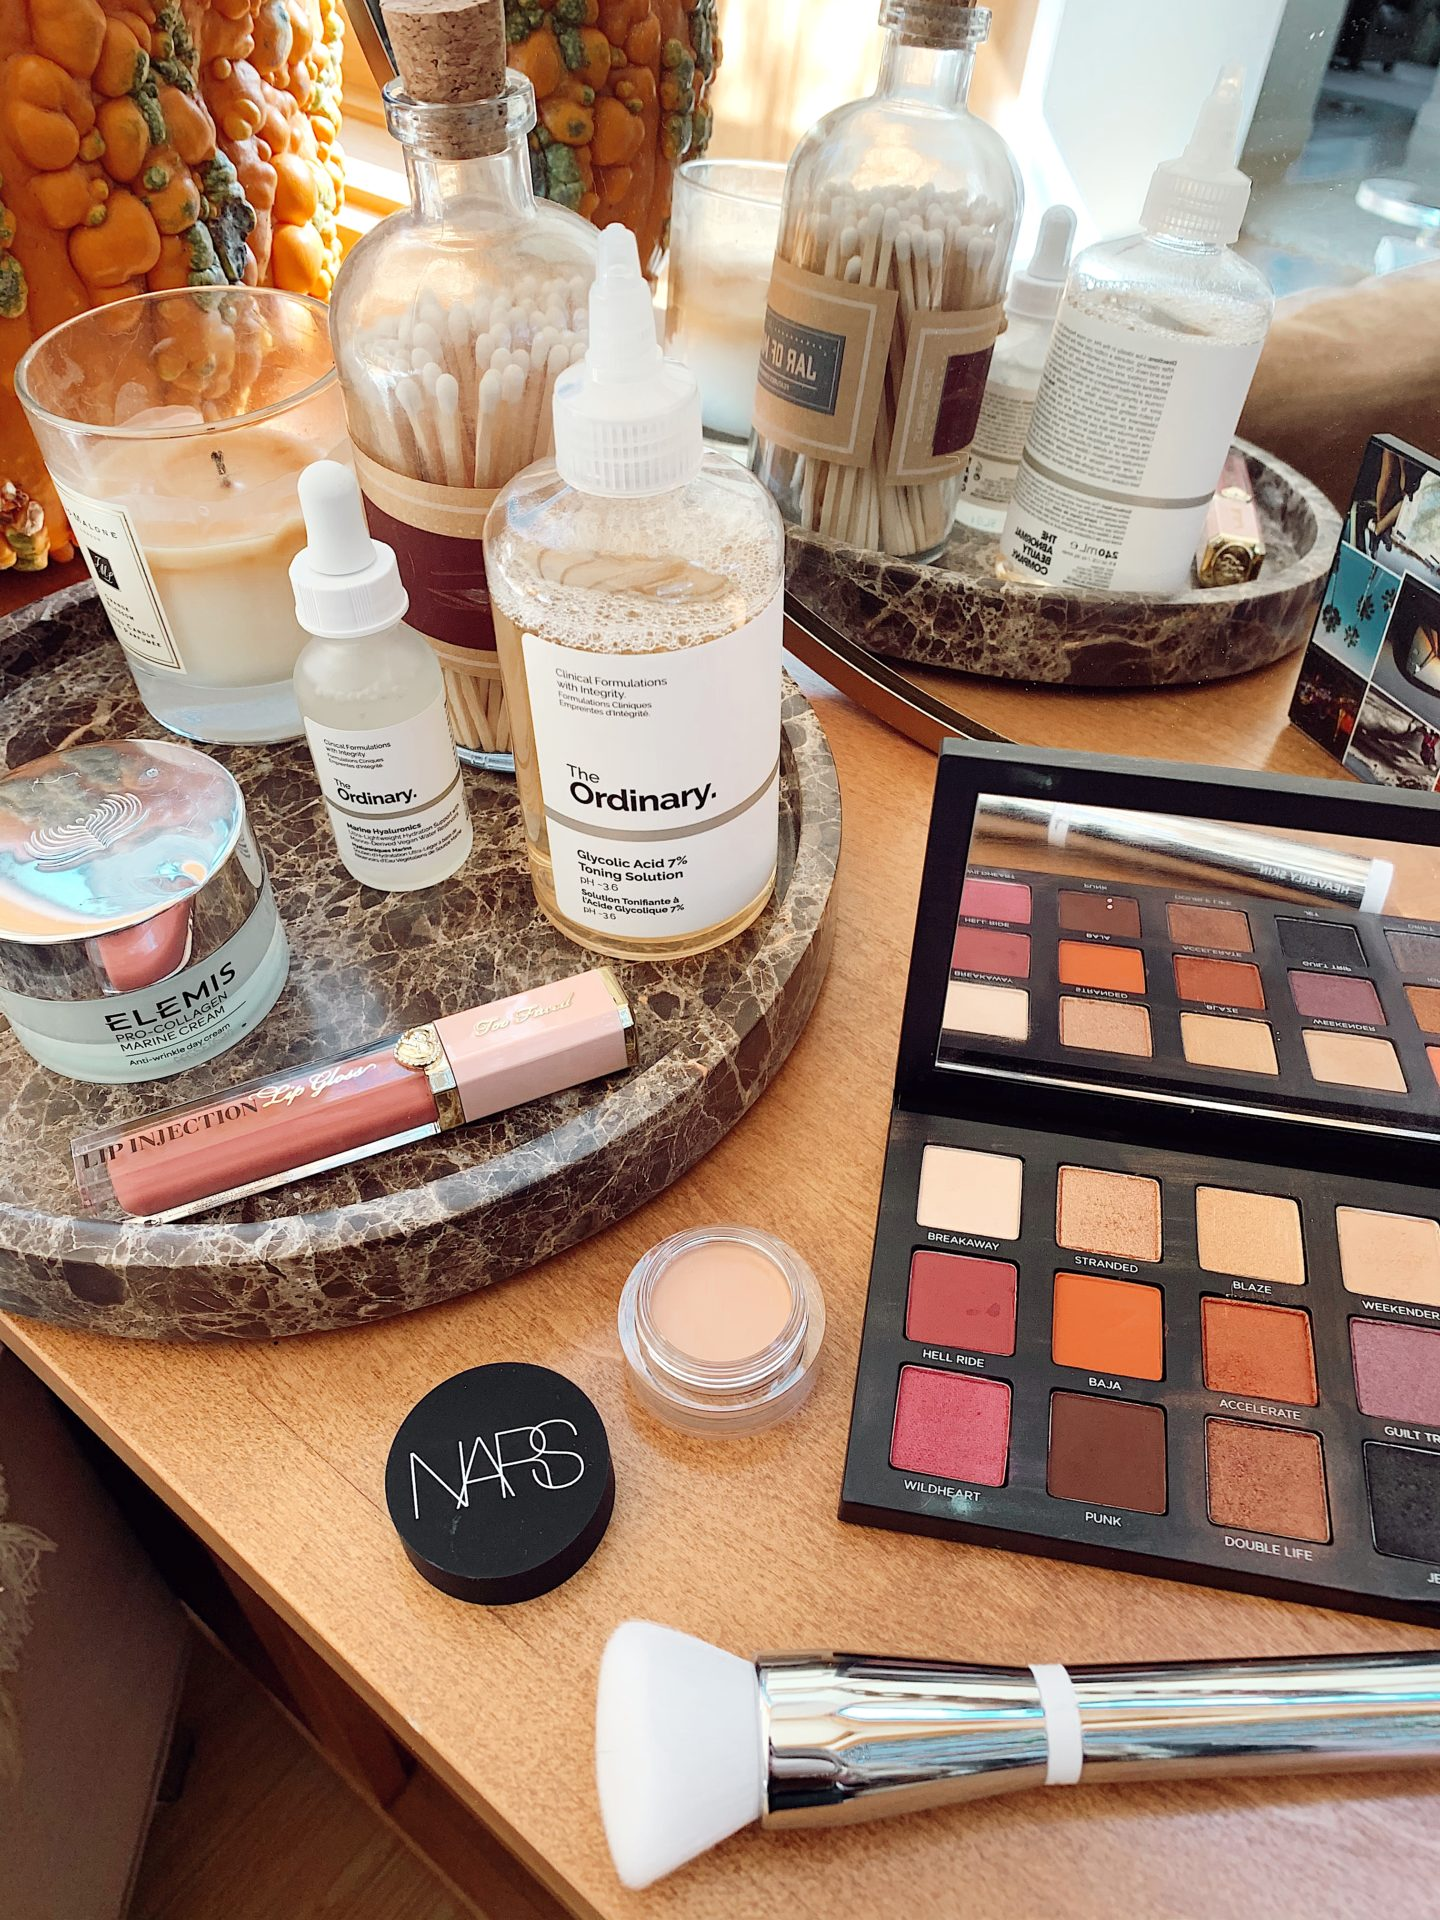 walmart fall beauty deals |Fall Beauty by popular San Francisco beauty blog, Just Add Glam: image of Urban Decay makeup pallet, Nars makeup, and Too Faced lip injection lip gloss.